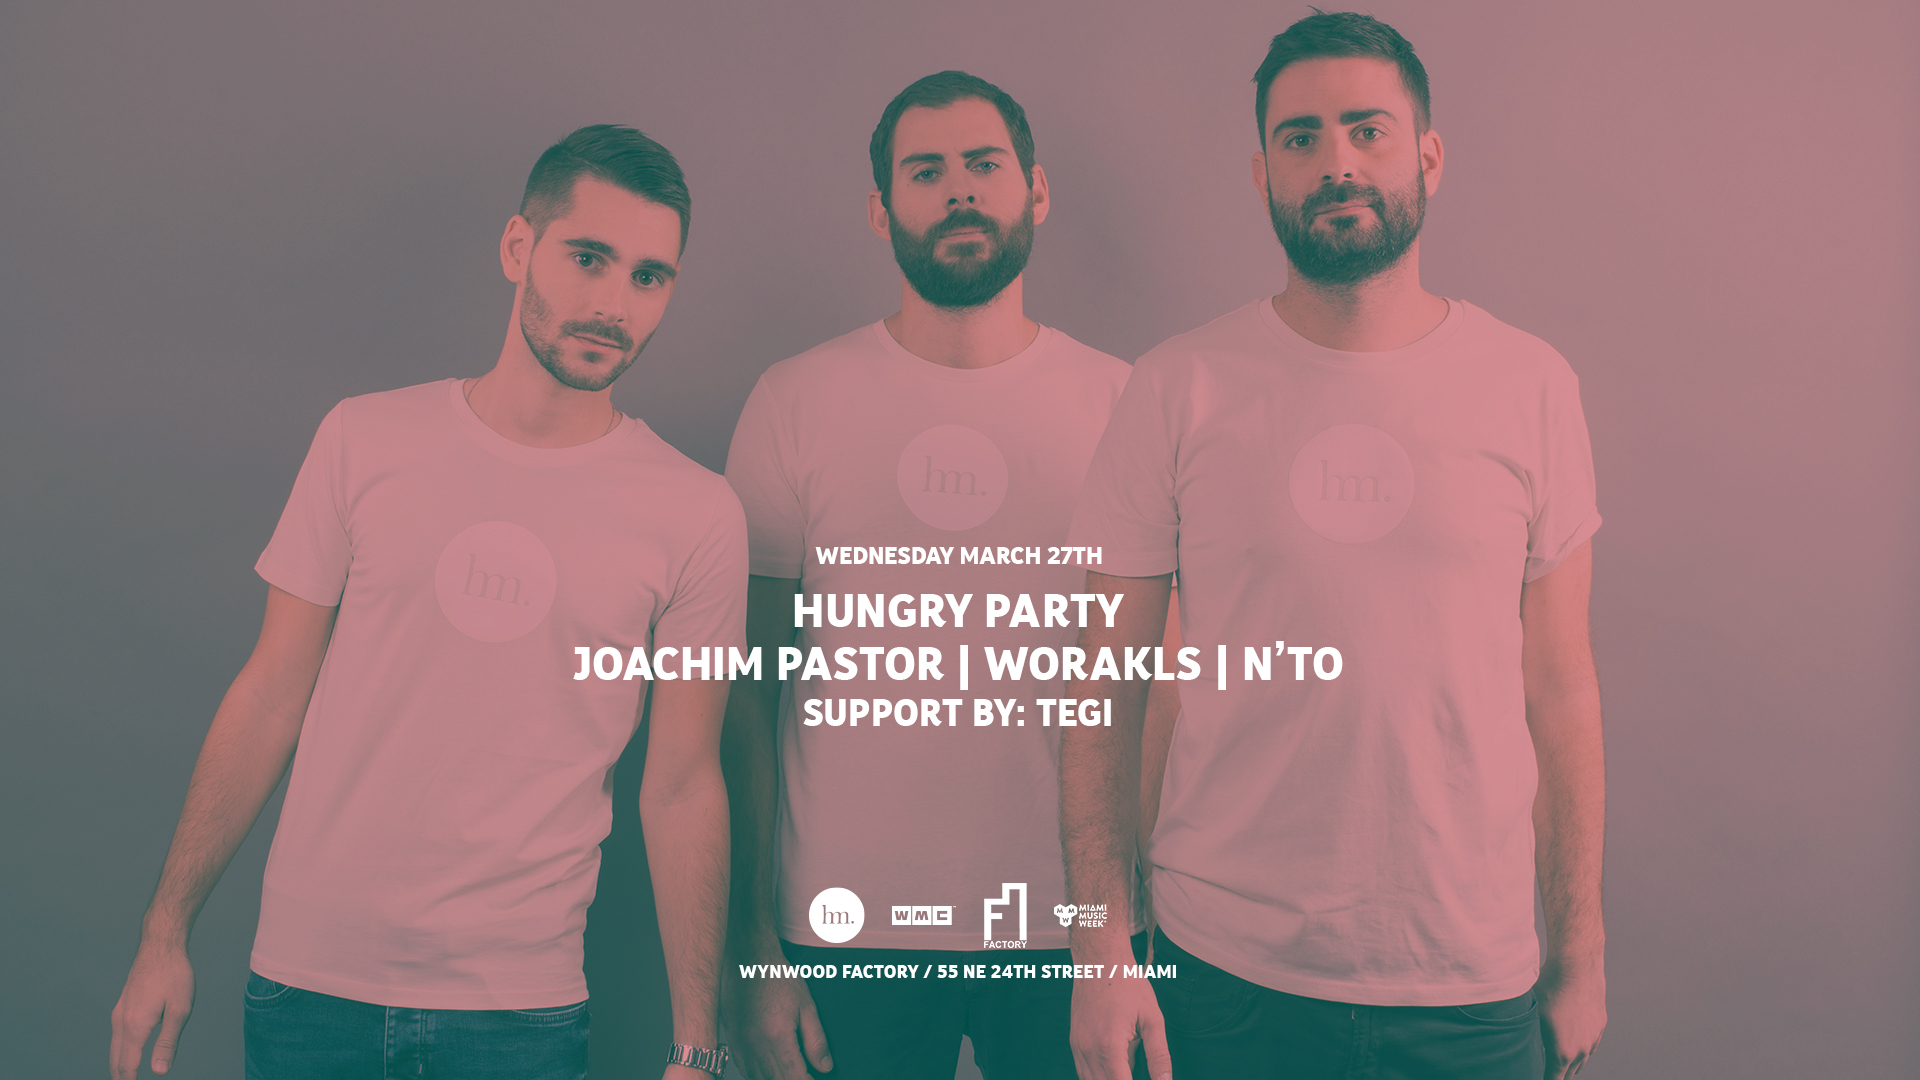 Hungry Party feat. Joachim Pastor - Worakls - N'to (East Room) Image